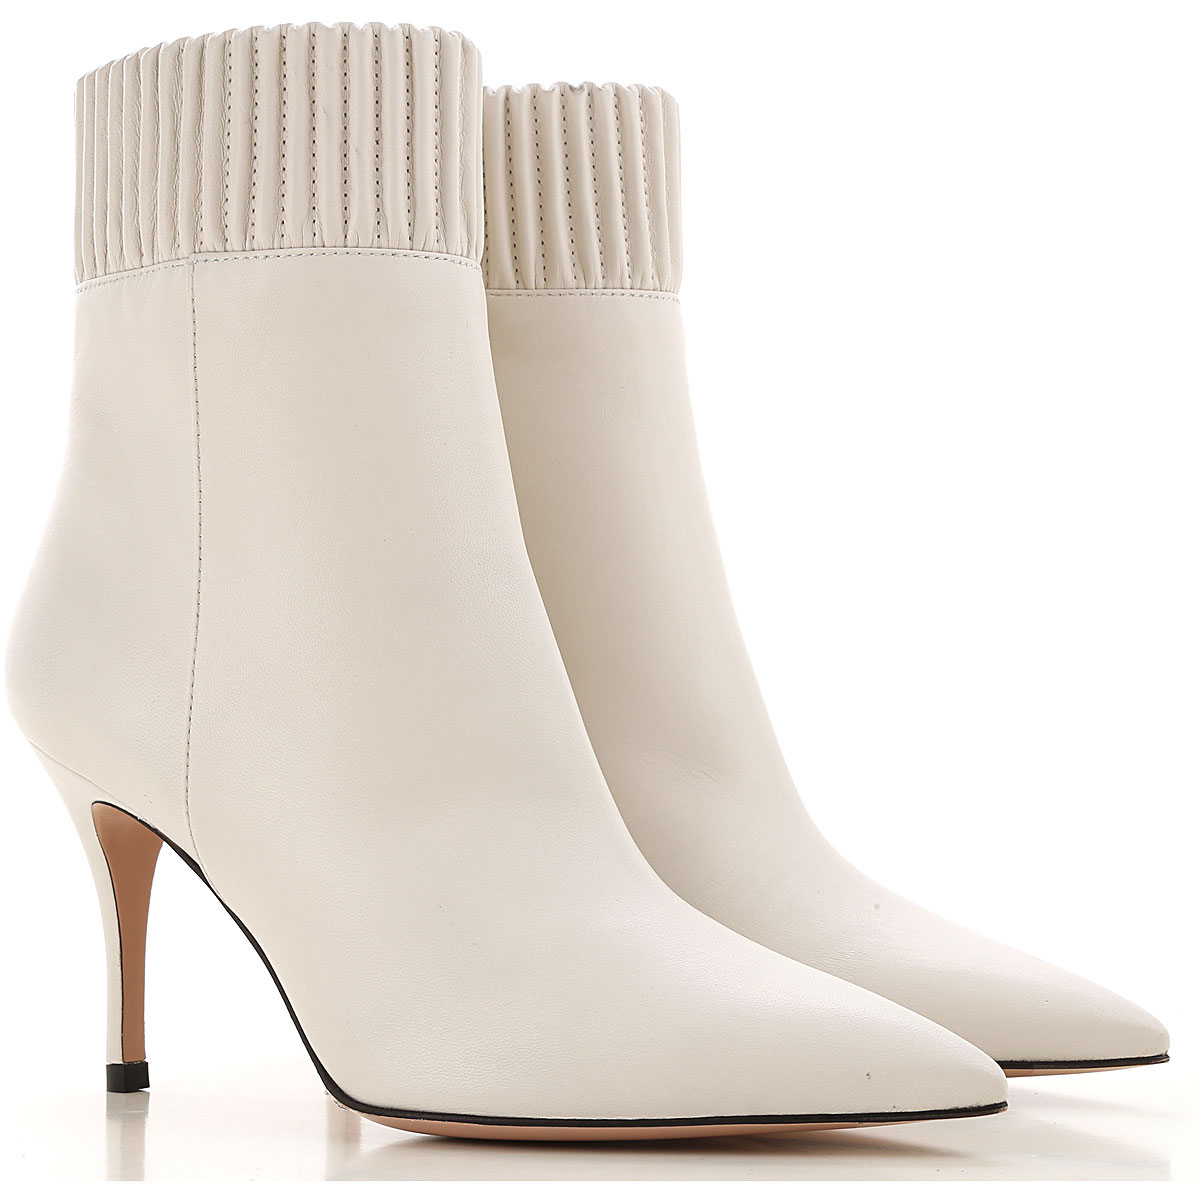 Roberto Festa Boots for Women, Booties On Sale, Chalk, Leather, 2019, 6 7 9